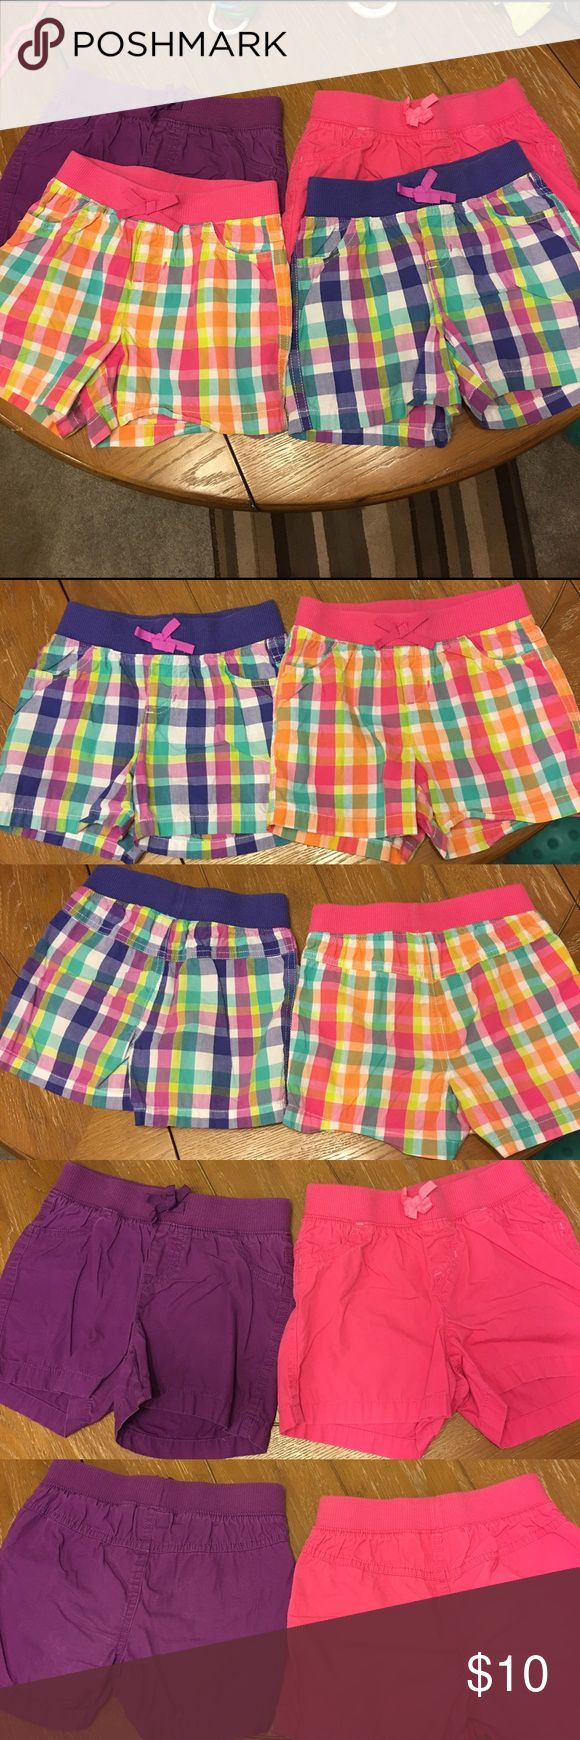 Jumping beans pull on shorts bundle + tank top 4 pair of size 6x shorts with elastic waistband and size 7 tank top. Please see original listings for more detail. jumping beans Bottoms Shorts